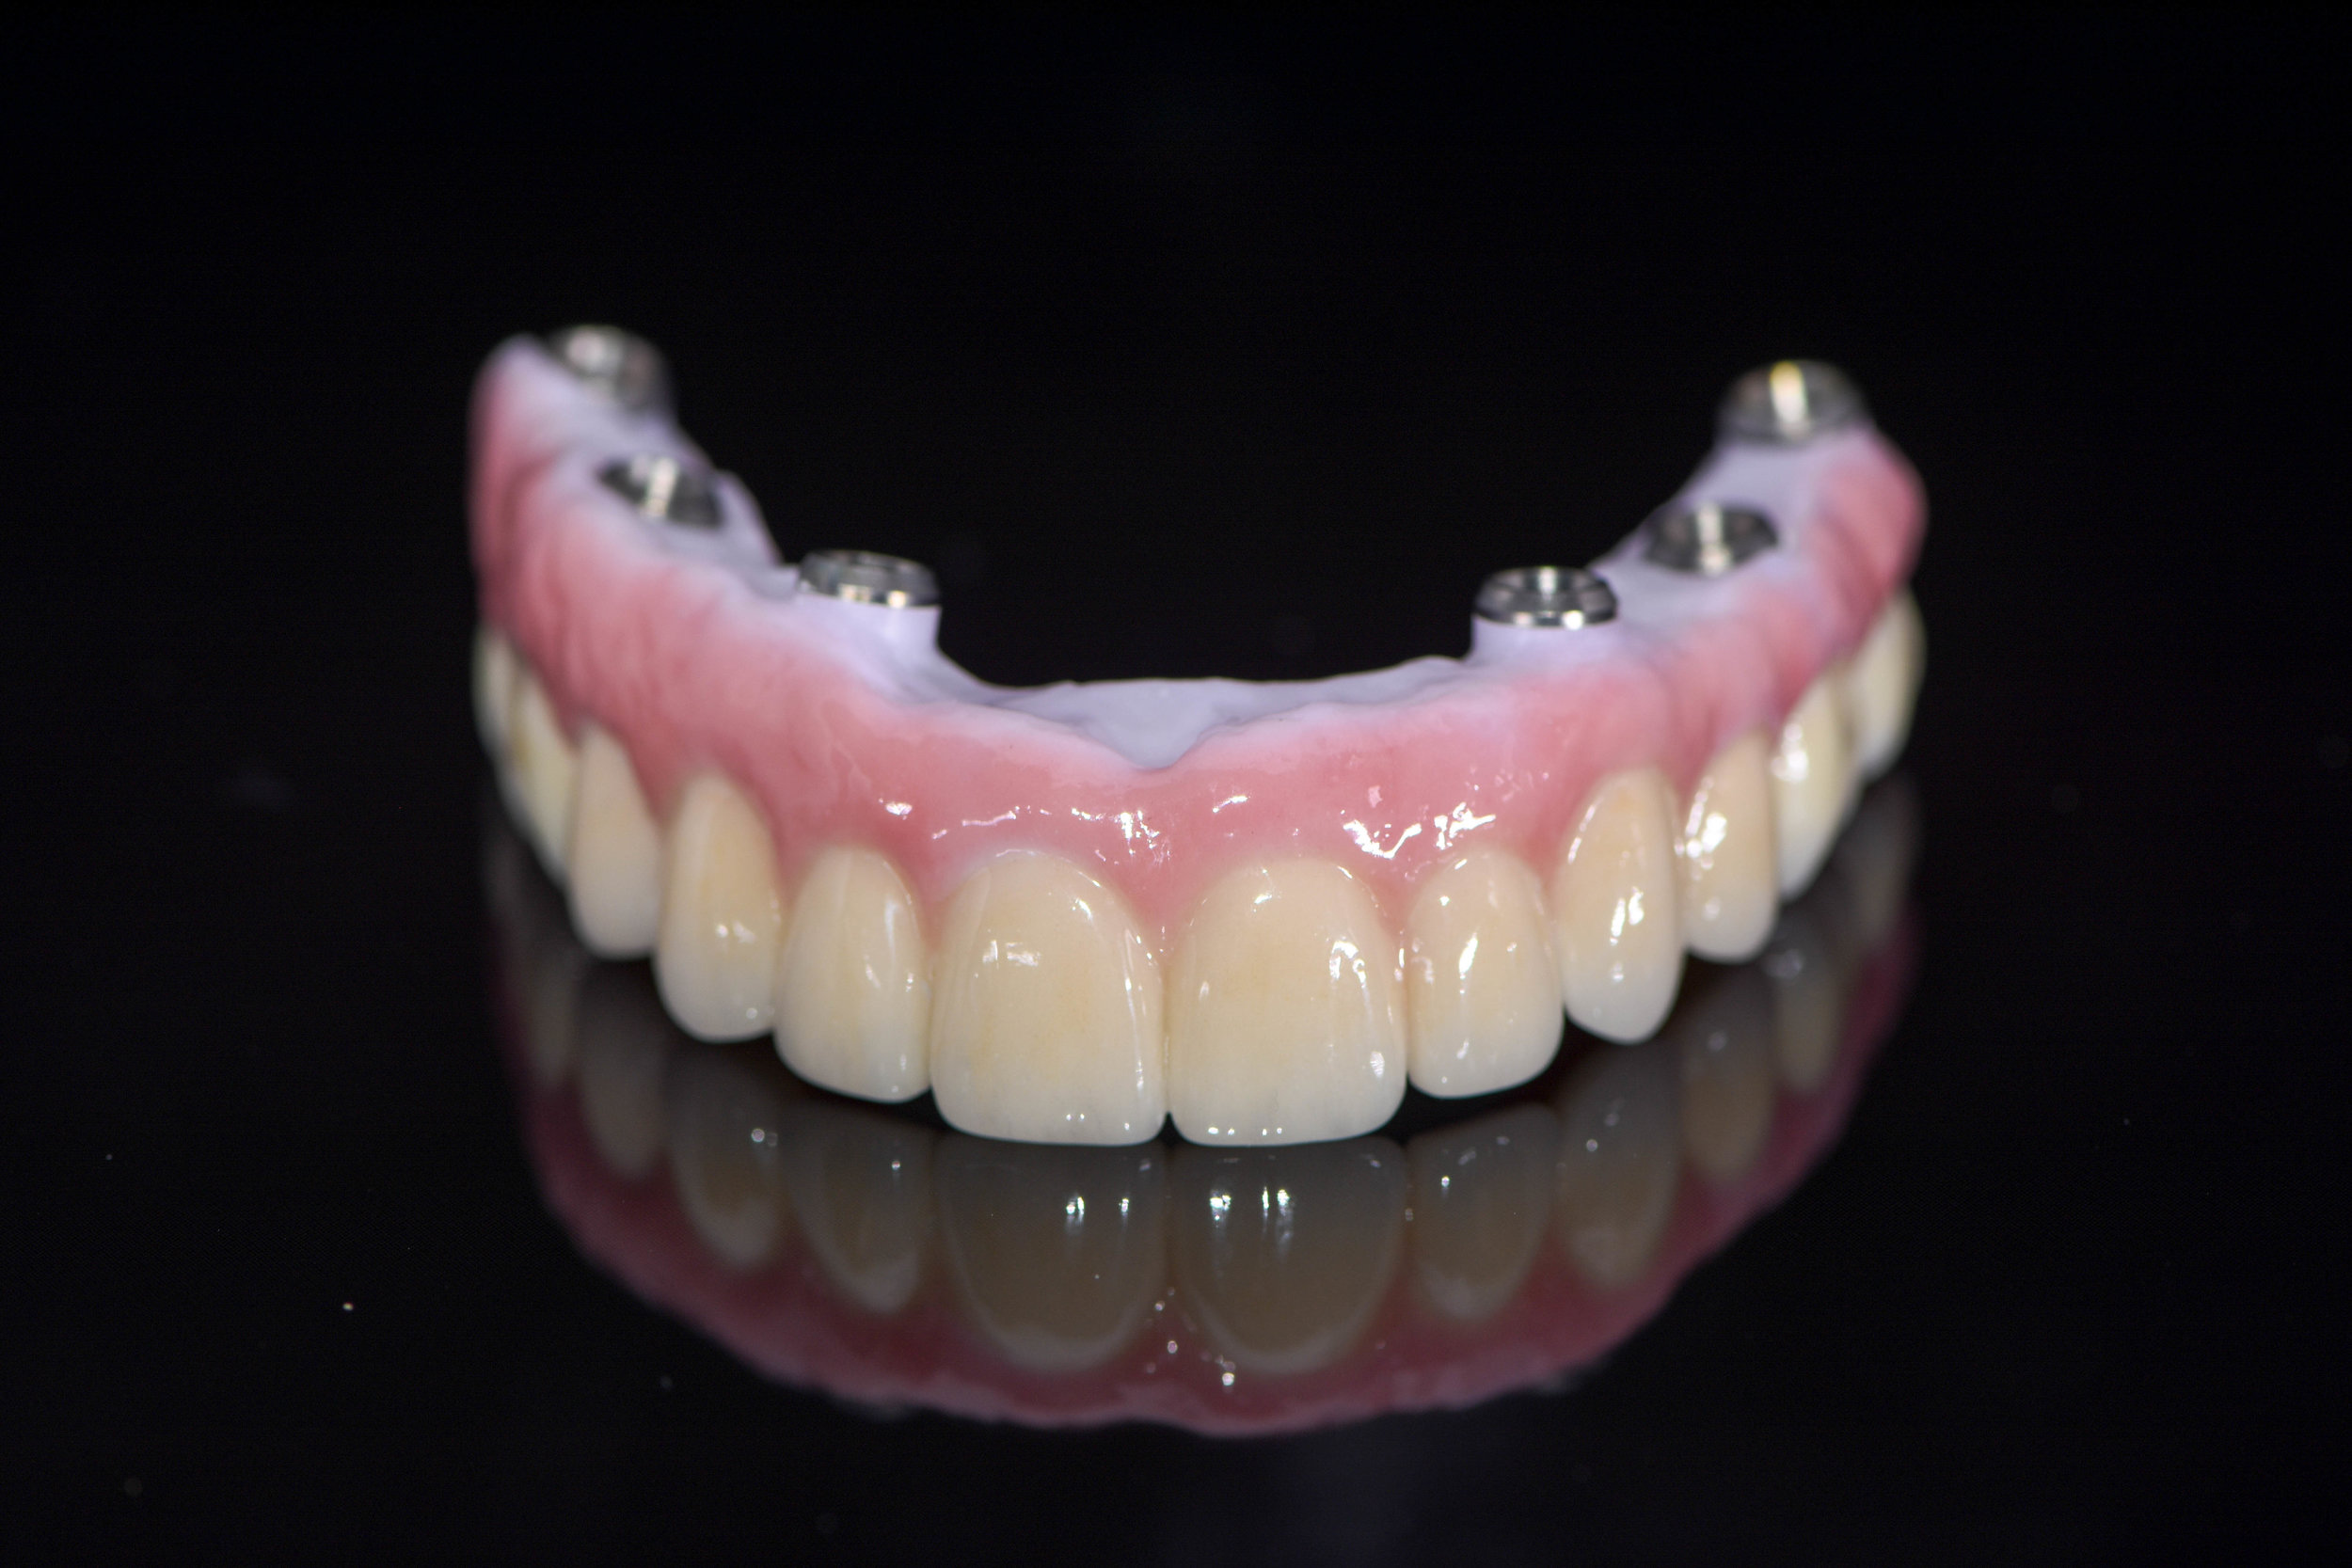 Implant Dentures - Dental implants can be used to help improve the support, stability, and retention of your dentures.Learn More